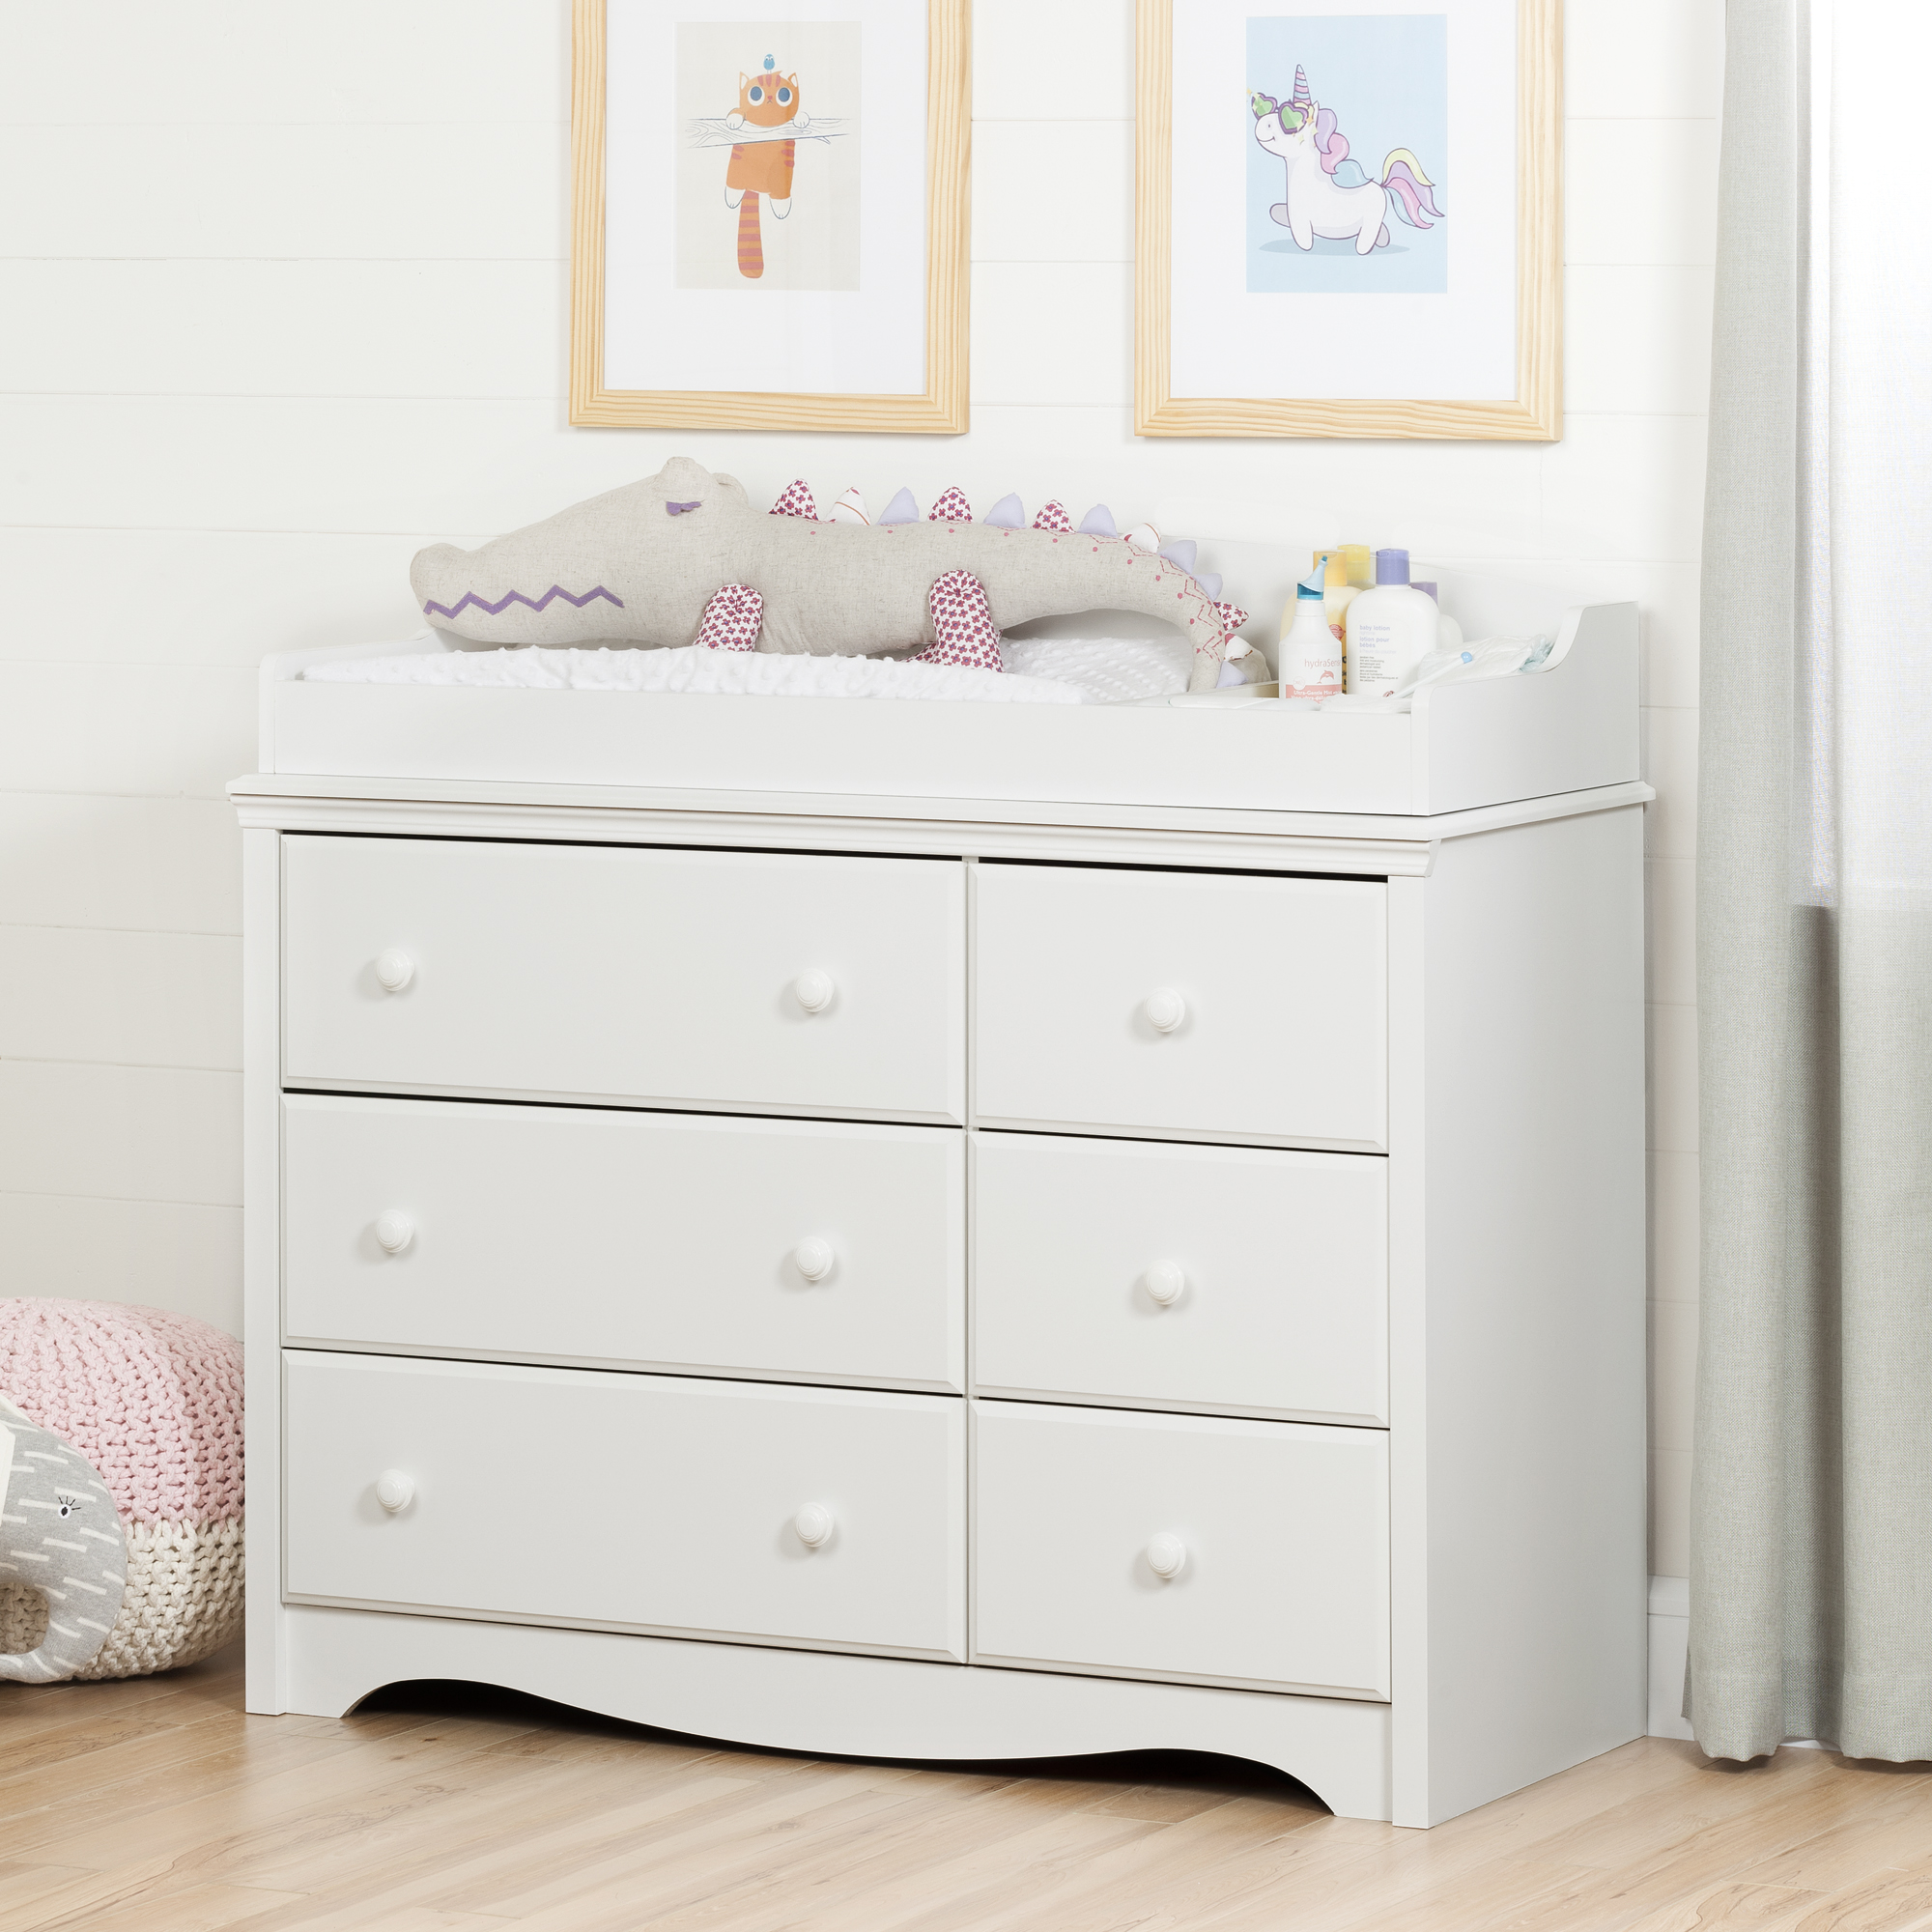 South Shore Angel Changing Table Dresser with 6 Drawers, Multiple Finishes by South Shore Furniture